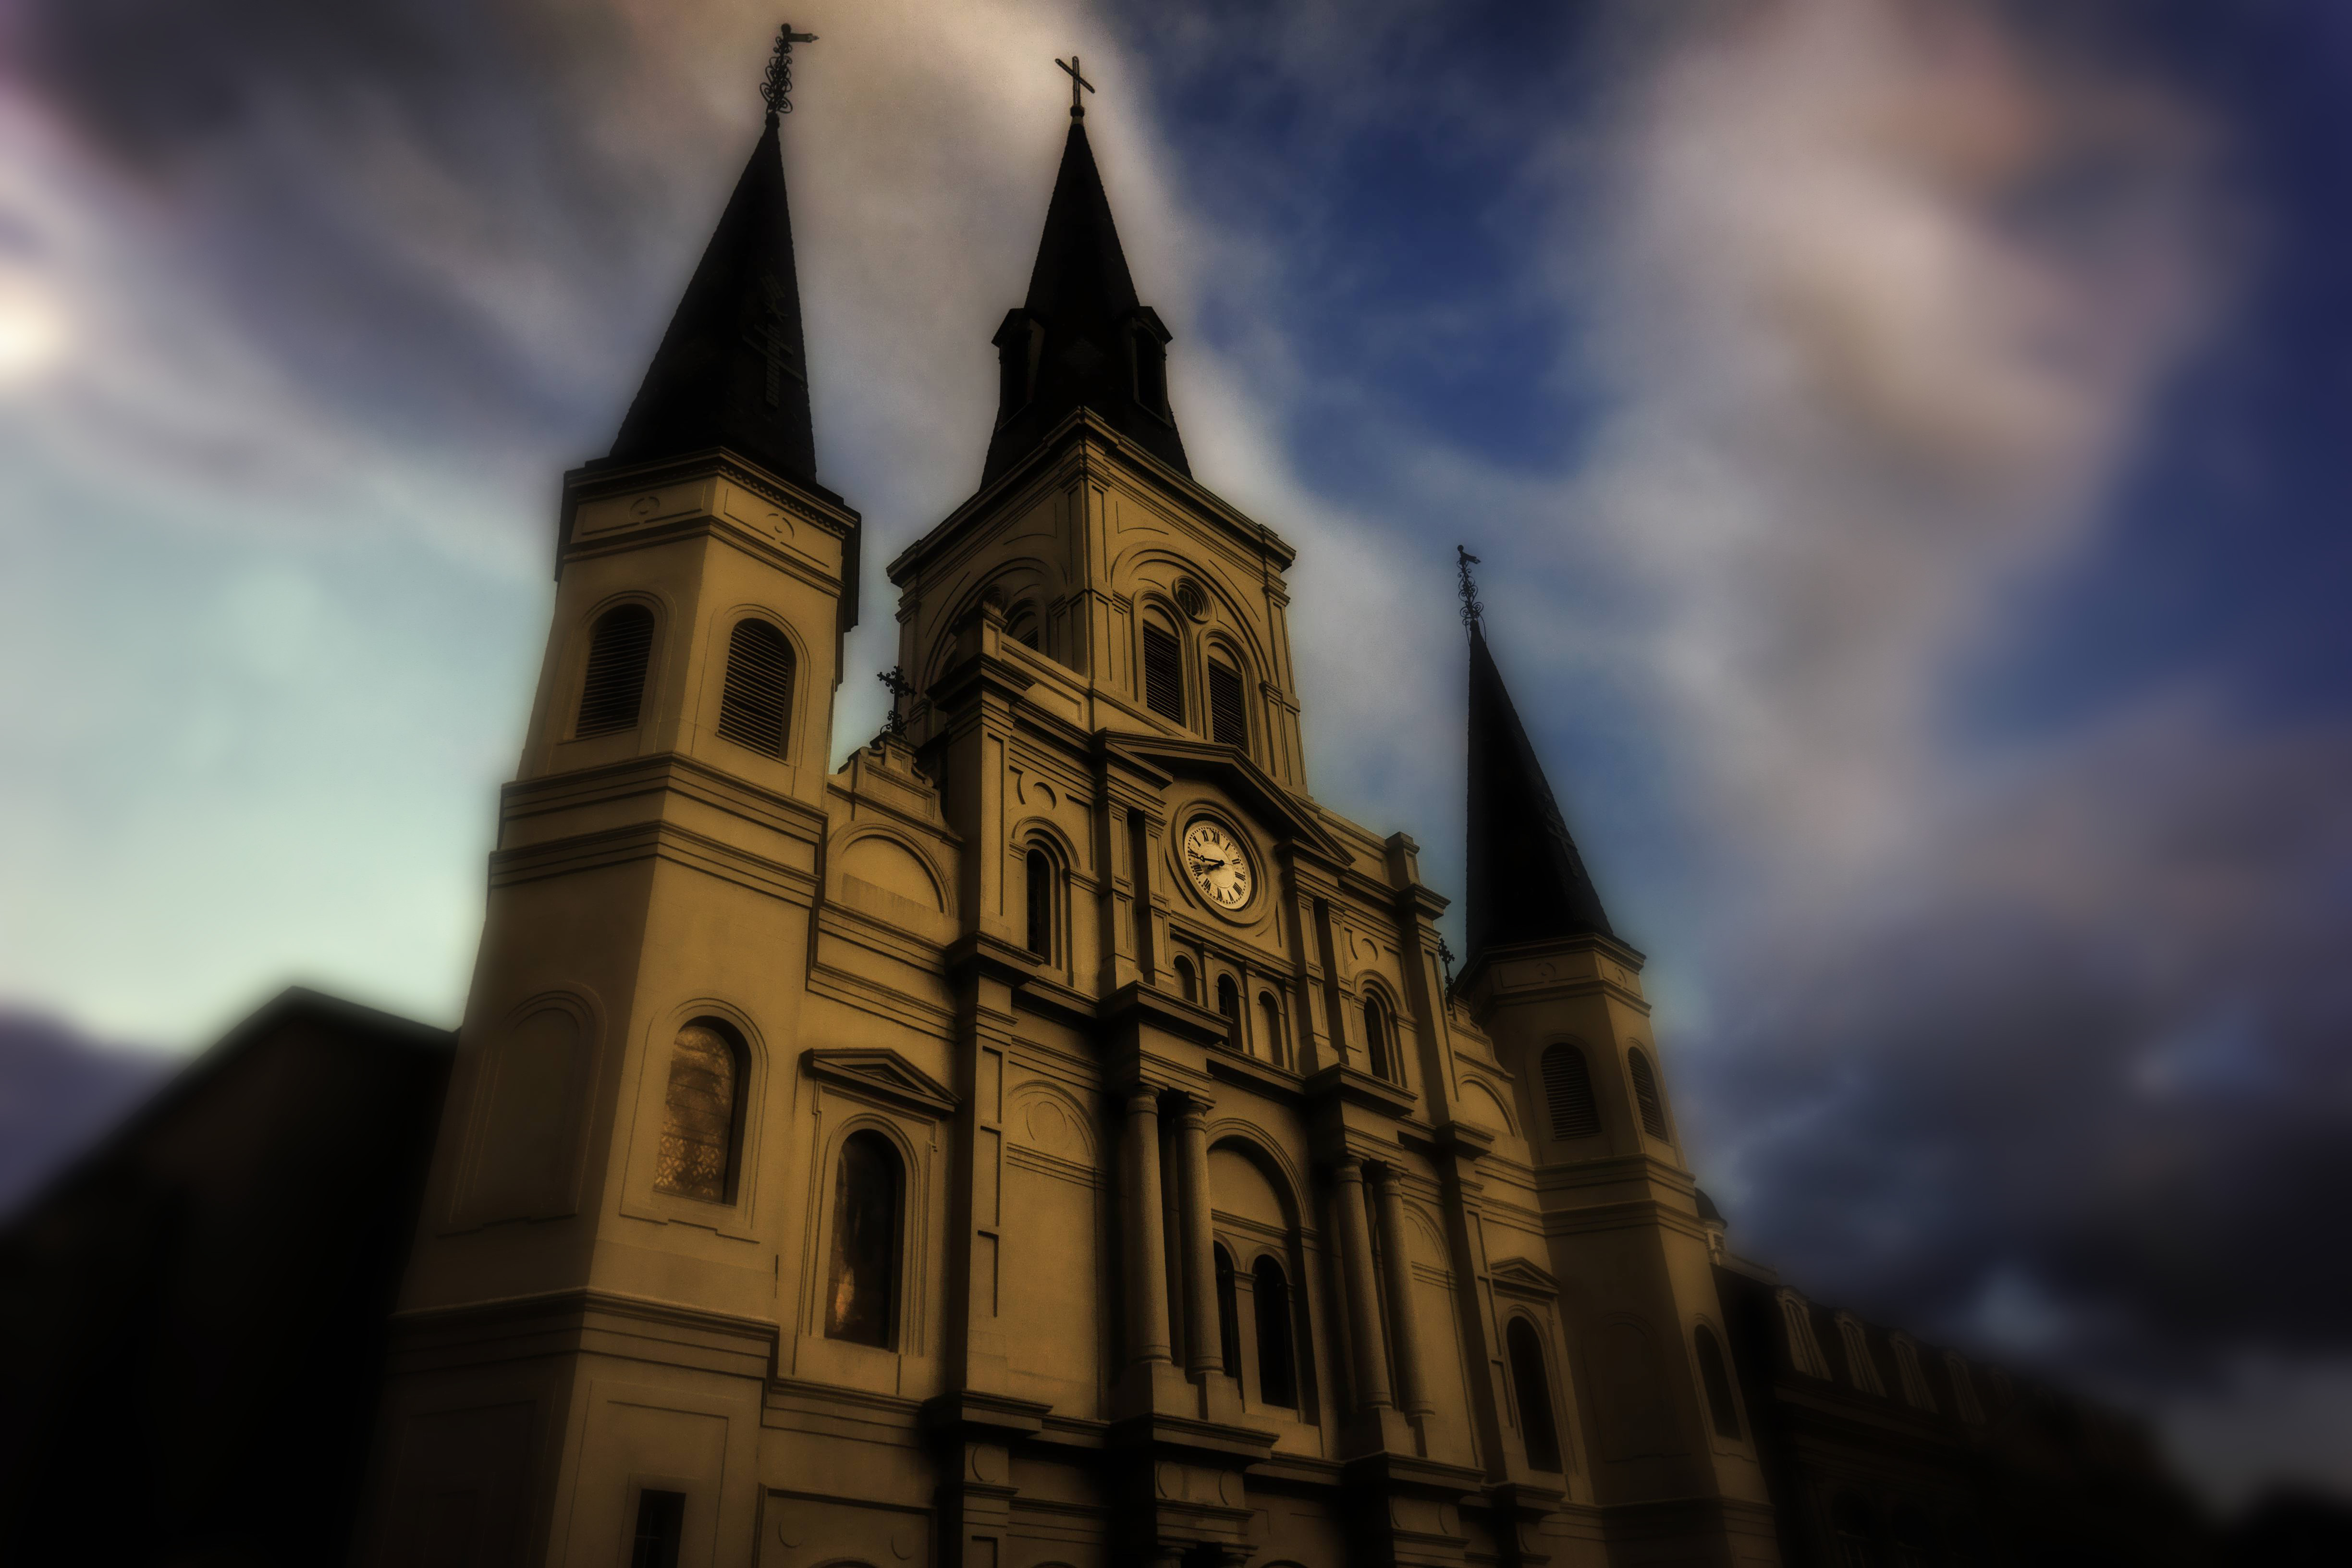 The St. Louis Cathedral has become a magical place for me, especially when I am chasing light and weather.